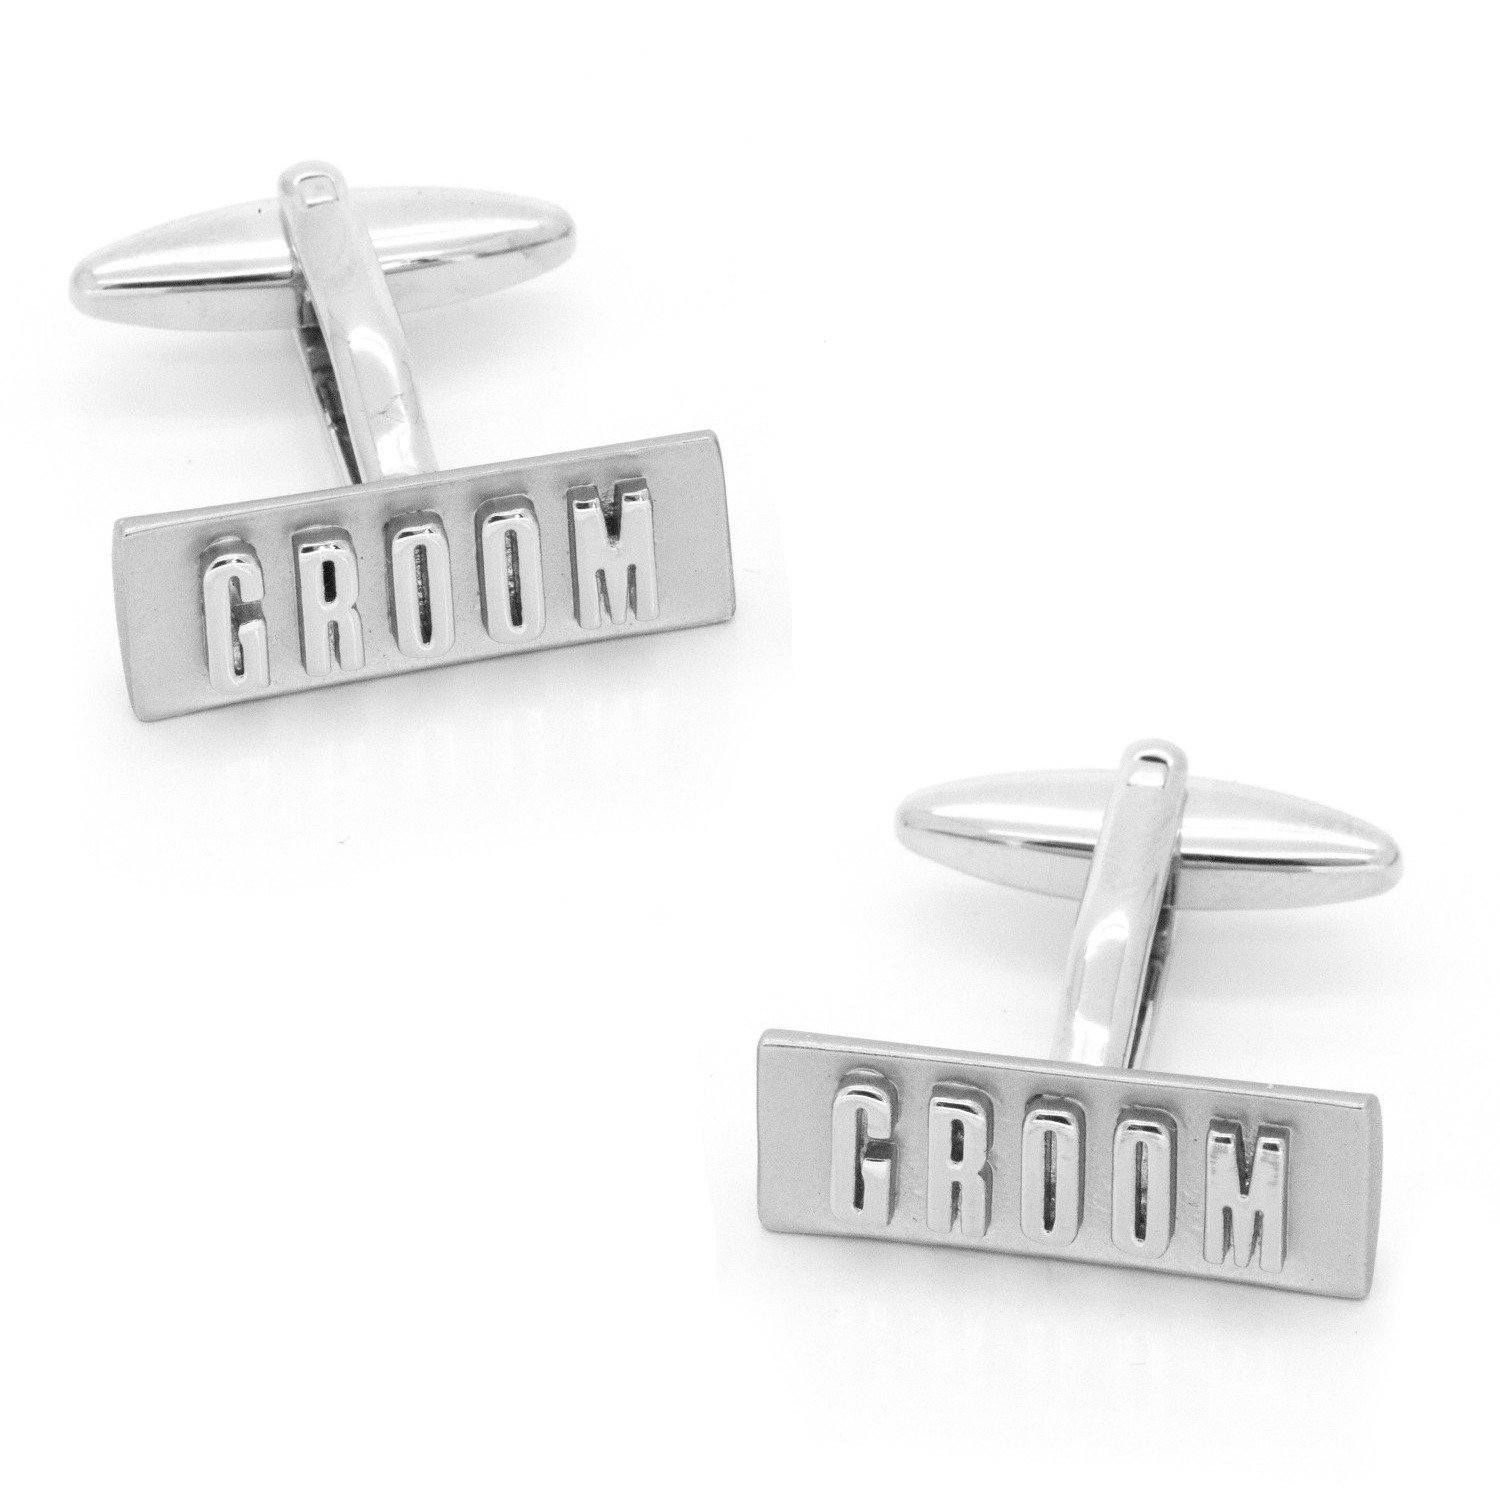 Groom Raised Lettering Cufflinks, Wedding Cufflinks, Cuffed.com.au, CL9550, $59.95